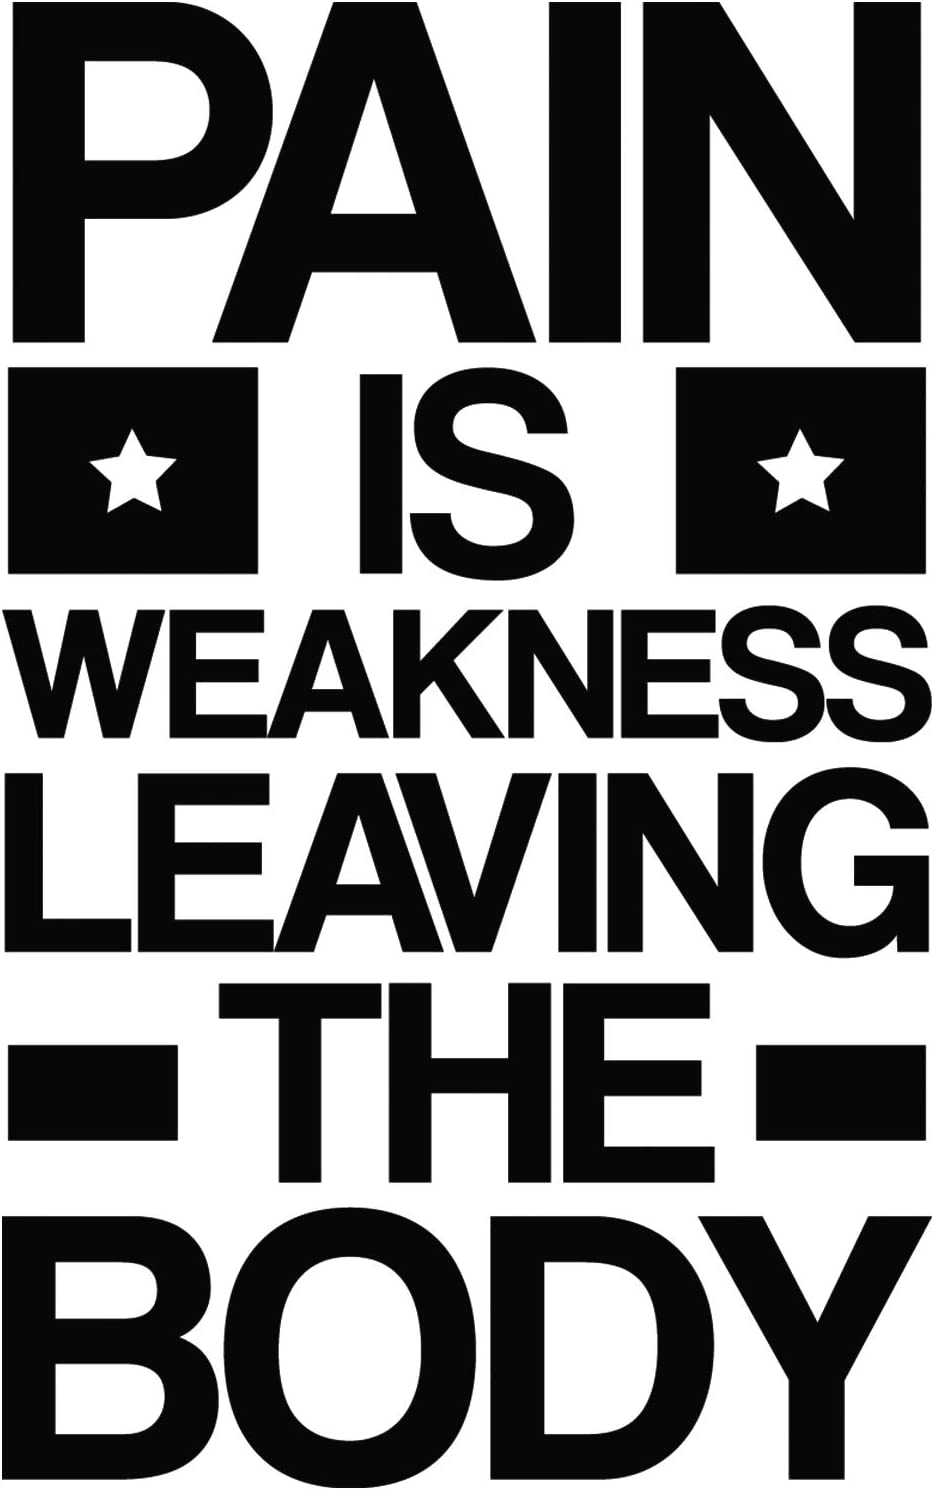 My Vinyl Story | Pain is Weakness Leaving The Body | Motivational Large Gym Wall Decal Quote for Home Gym Yoga Exercise Fitness Workout Motivational Wall Art Decor Vinyl Removable Sticker 22x36 in